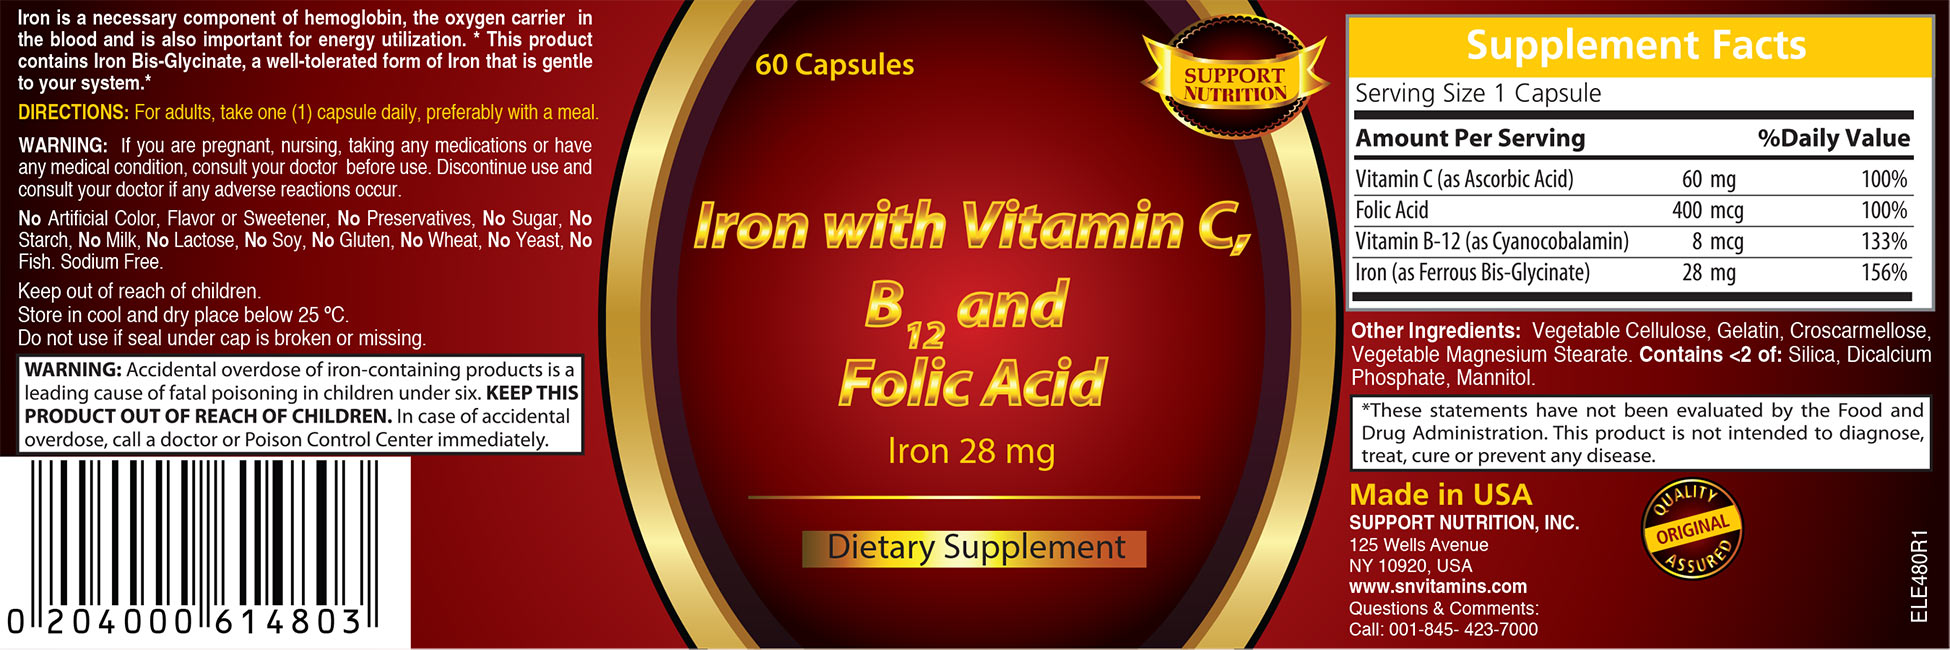 Iron with Vitamin C, B12 and Folic Acid